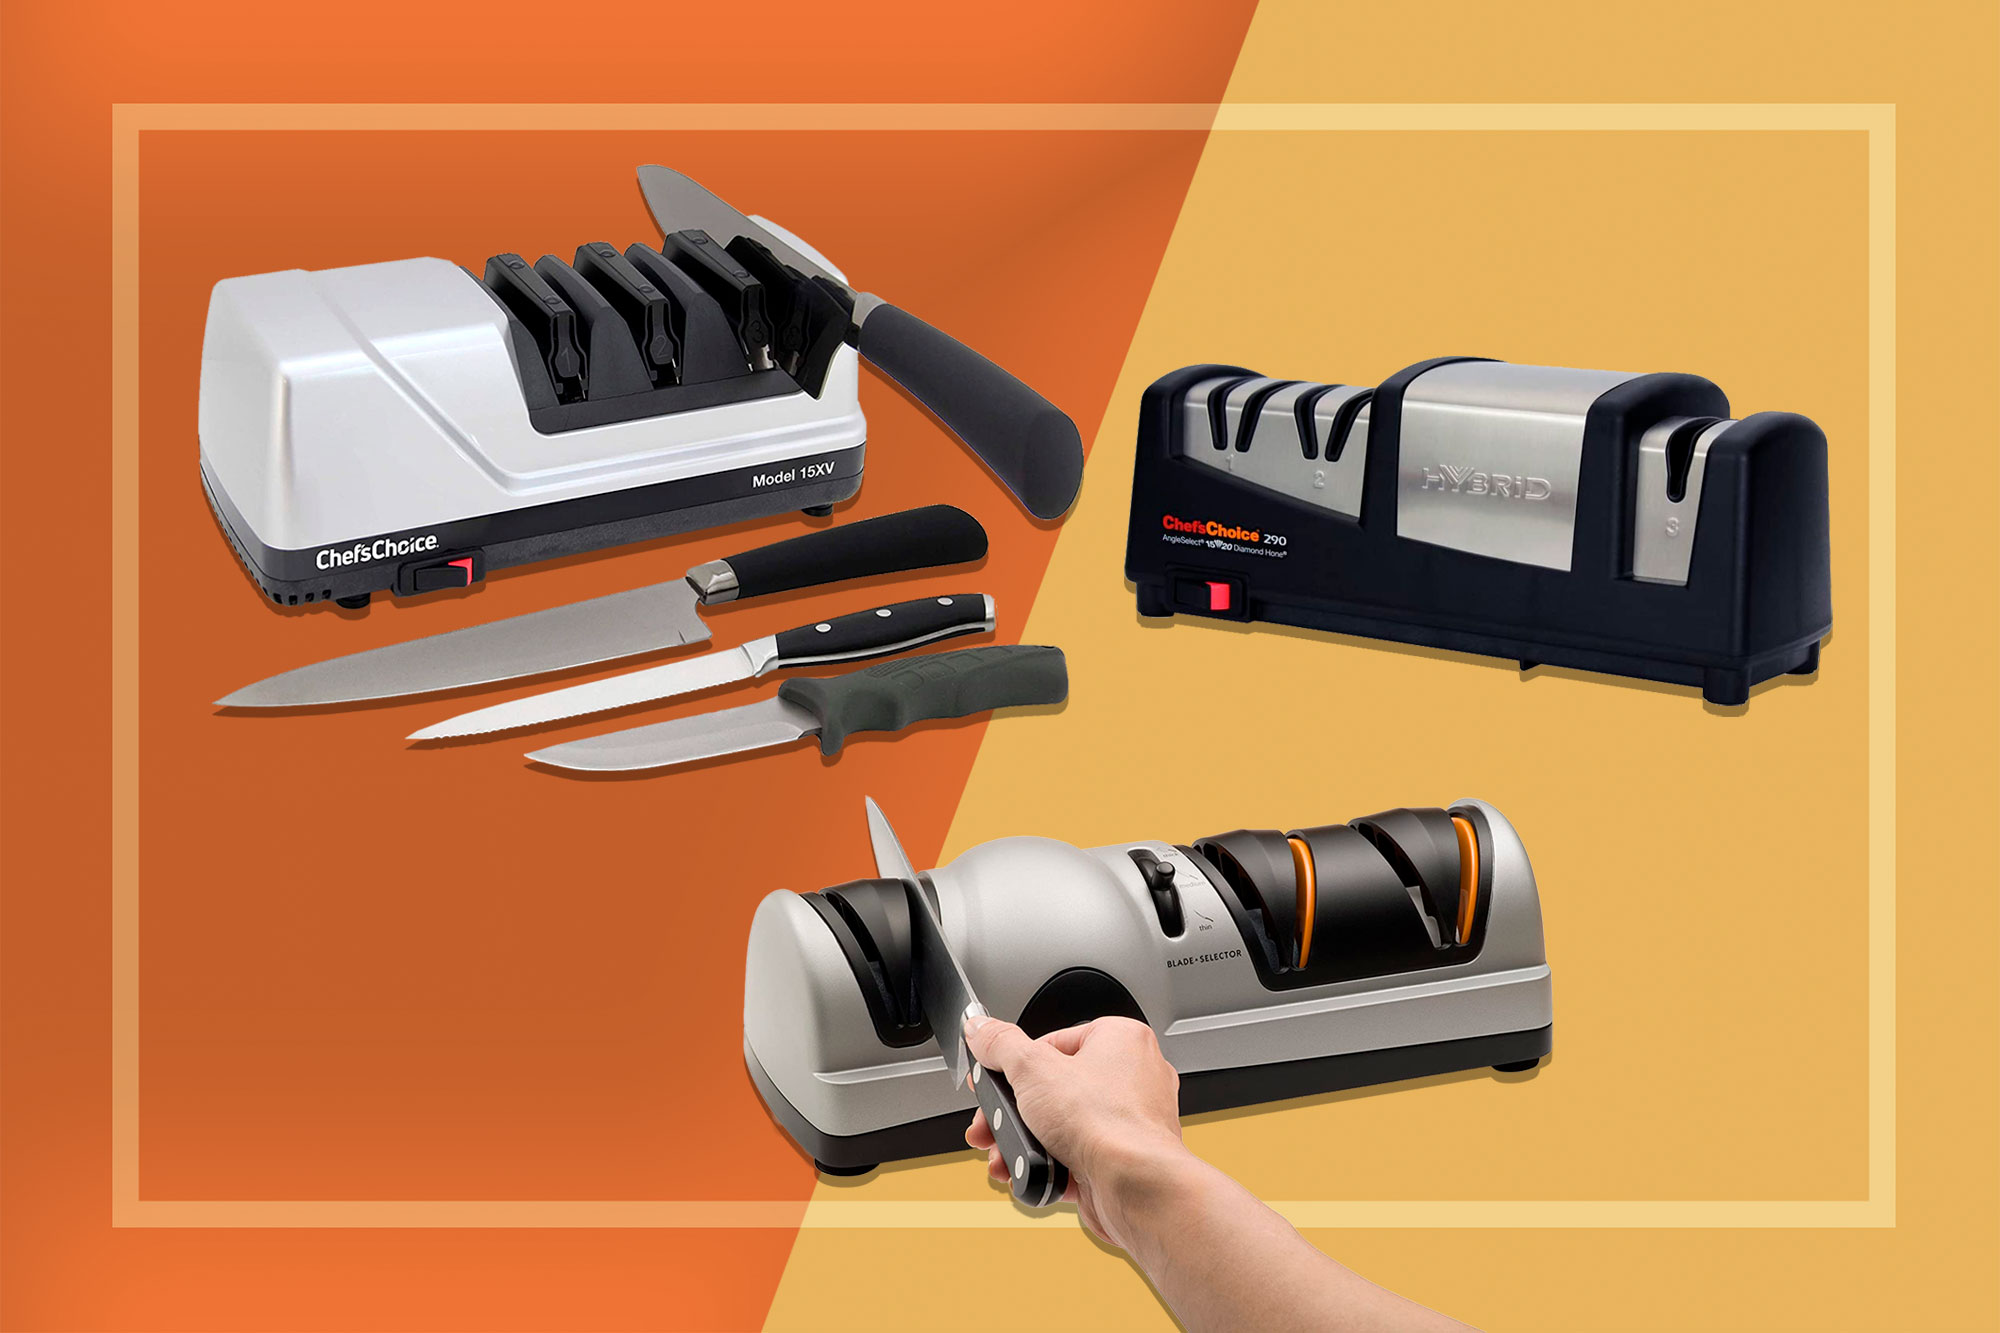 Electric Knife Sharpeners from Chef'sChoice and Presto